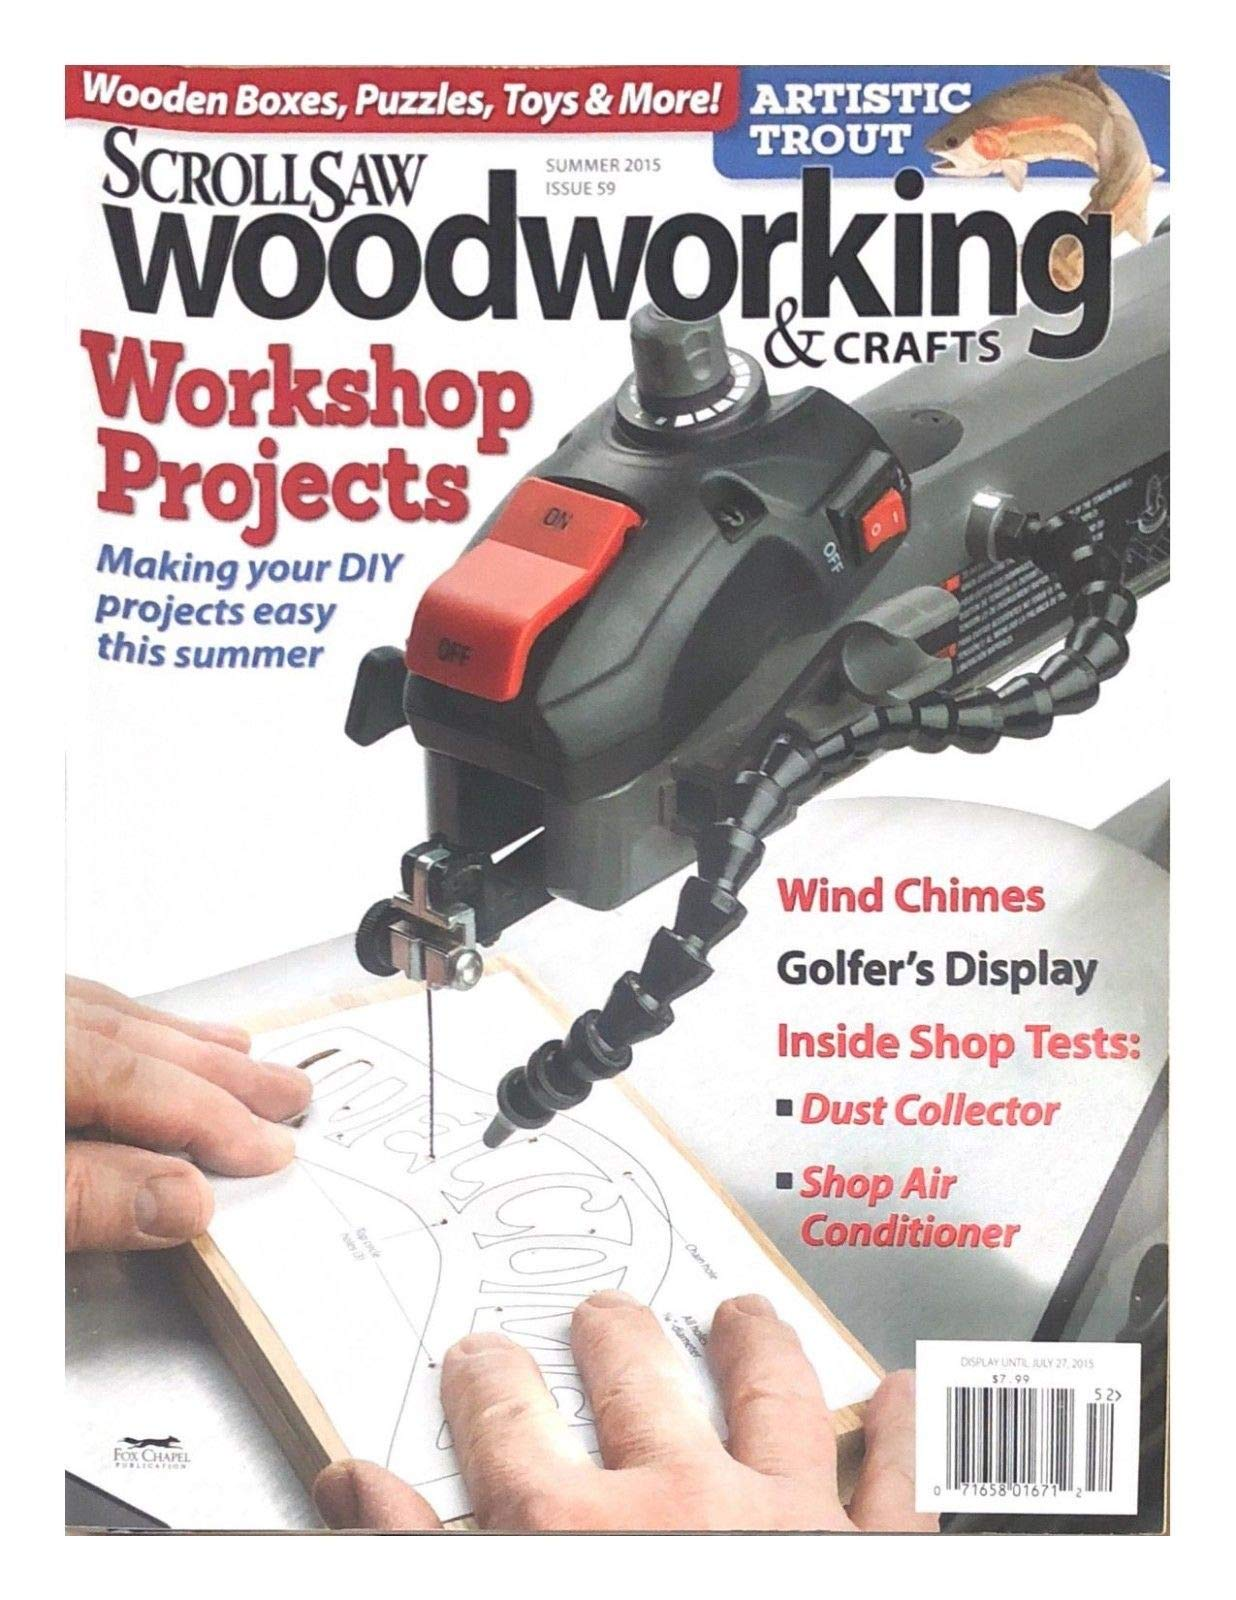 SCROLL SAW WOOD WORKING & CRAFTS MAGAZINE,WORKERSHOP PROJECTS, DISPLAY JUL,7,15